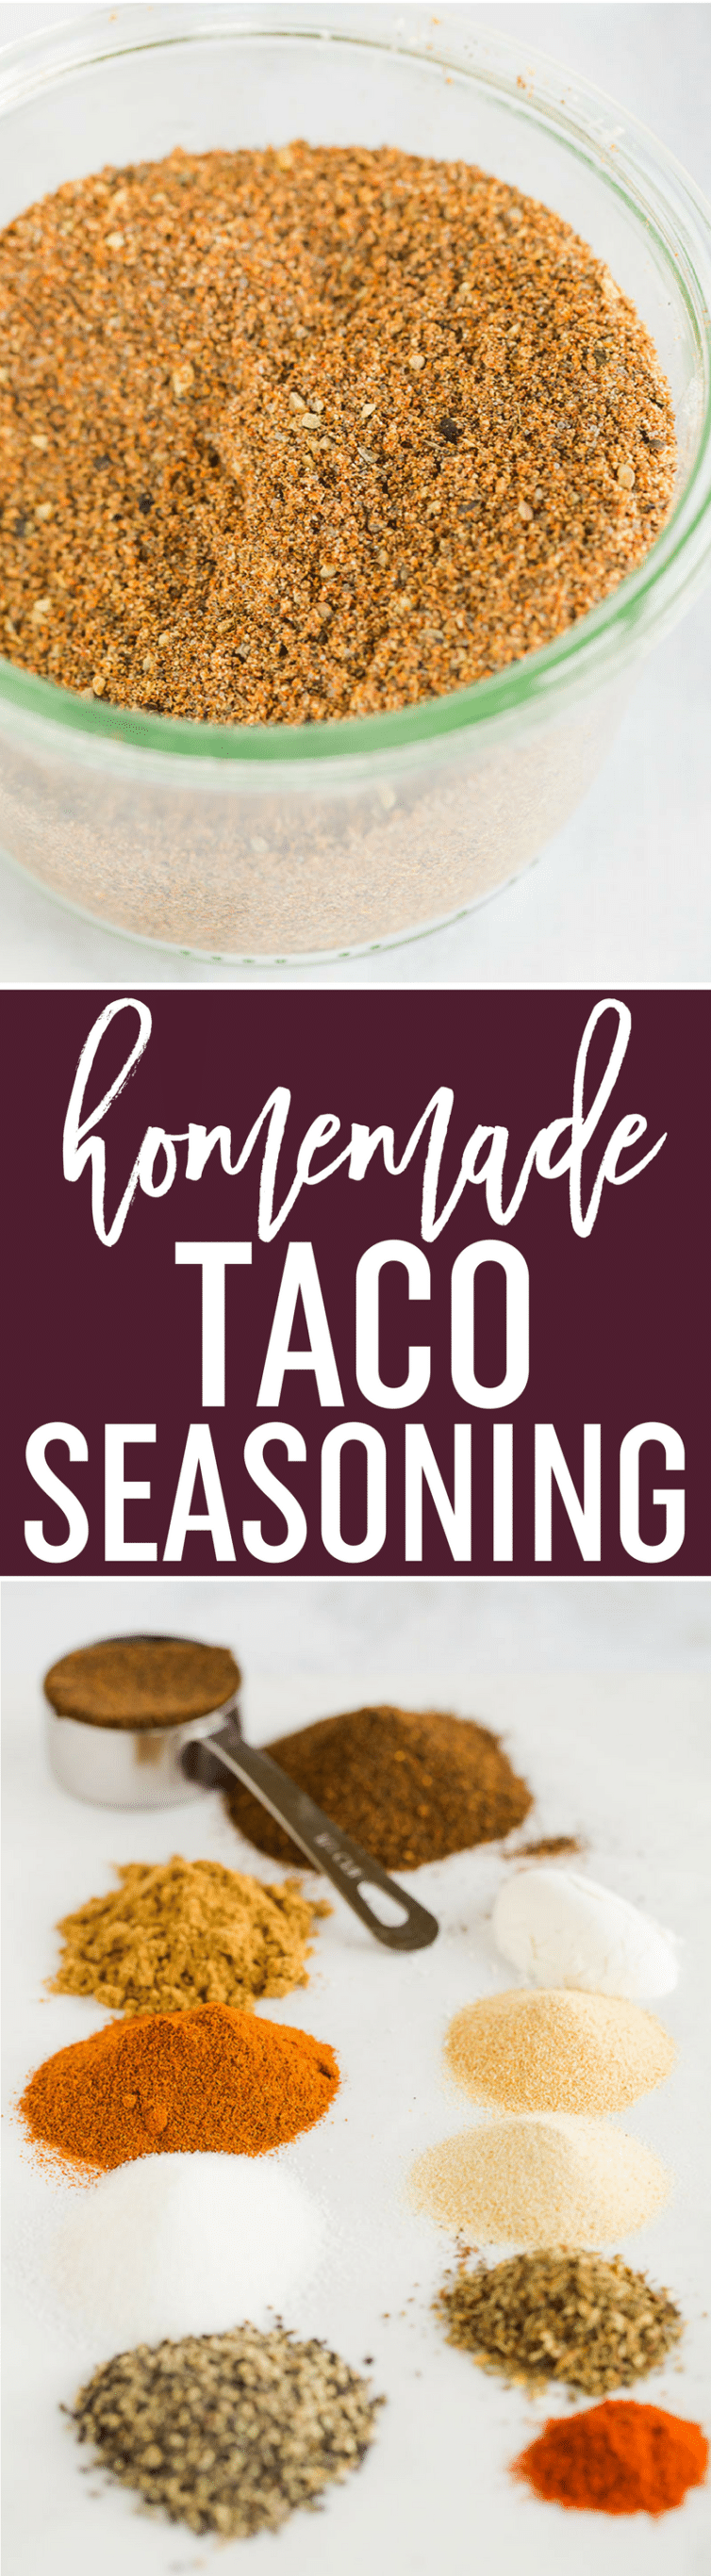 Homemade Taco Seasoning - This easy homemade taco seasoning mix can be made in just five minutes! Keep it in the pantry for quick taco nights with no preservatives.